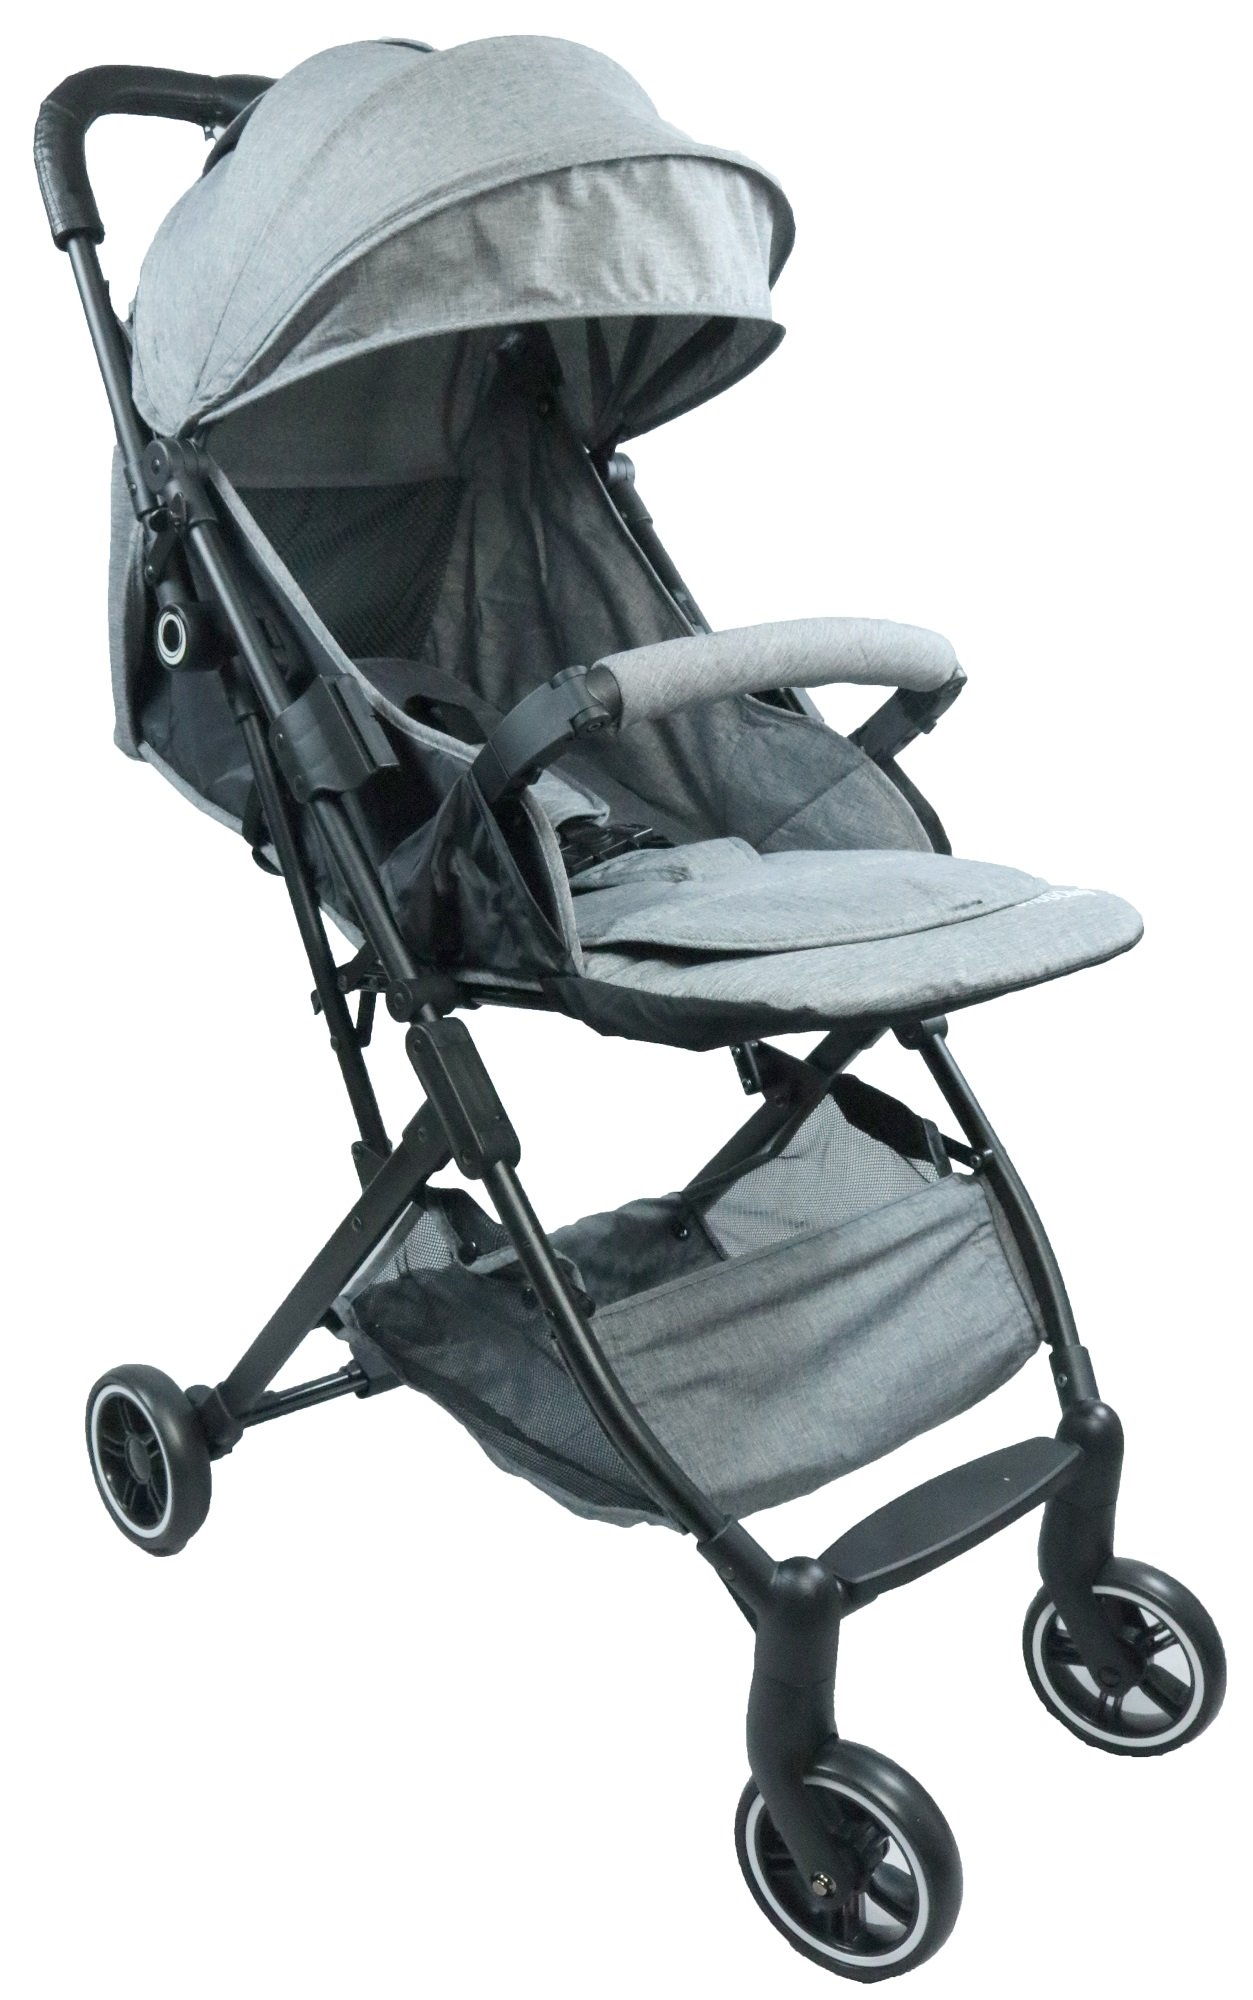 Hugo Baby Volare Portable Stroller (Grey) with FREE PU Leather Handle Cover + Stroller Cover Bag (Exclusive)